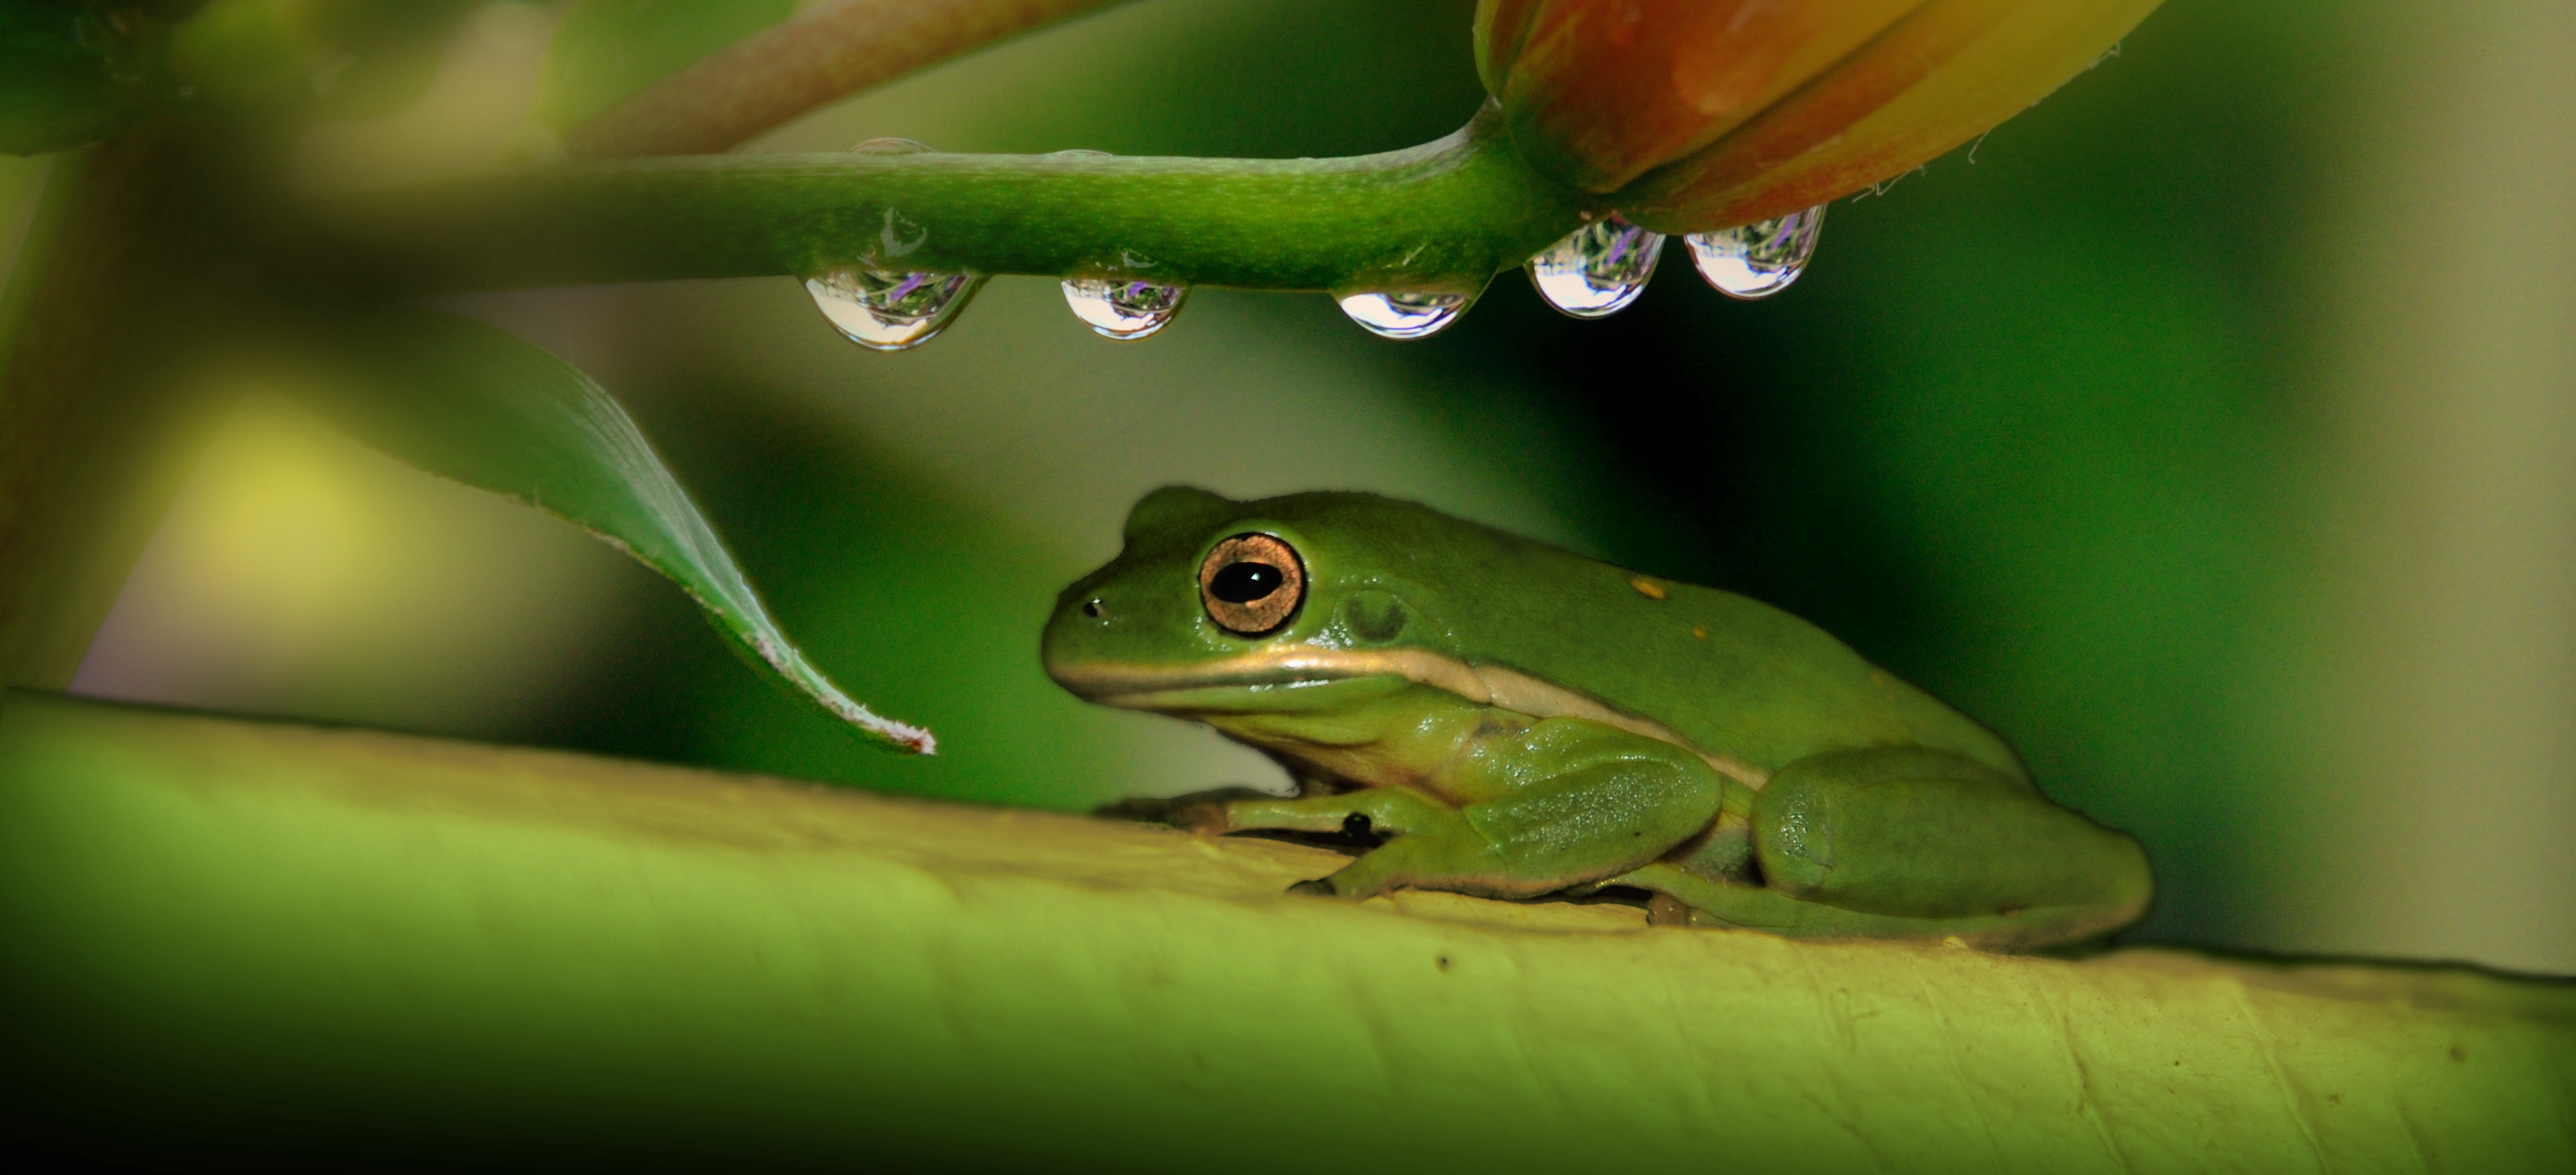 66797 download wallpaper Animals, Drops, Plant, Frog screensavers and pictures for free